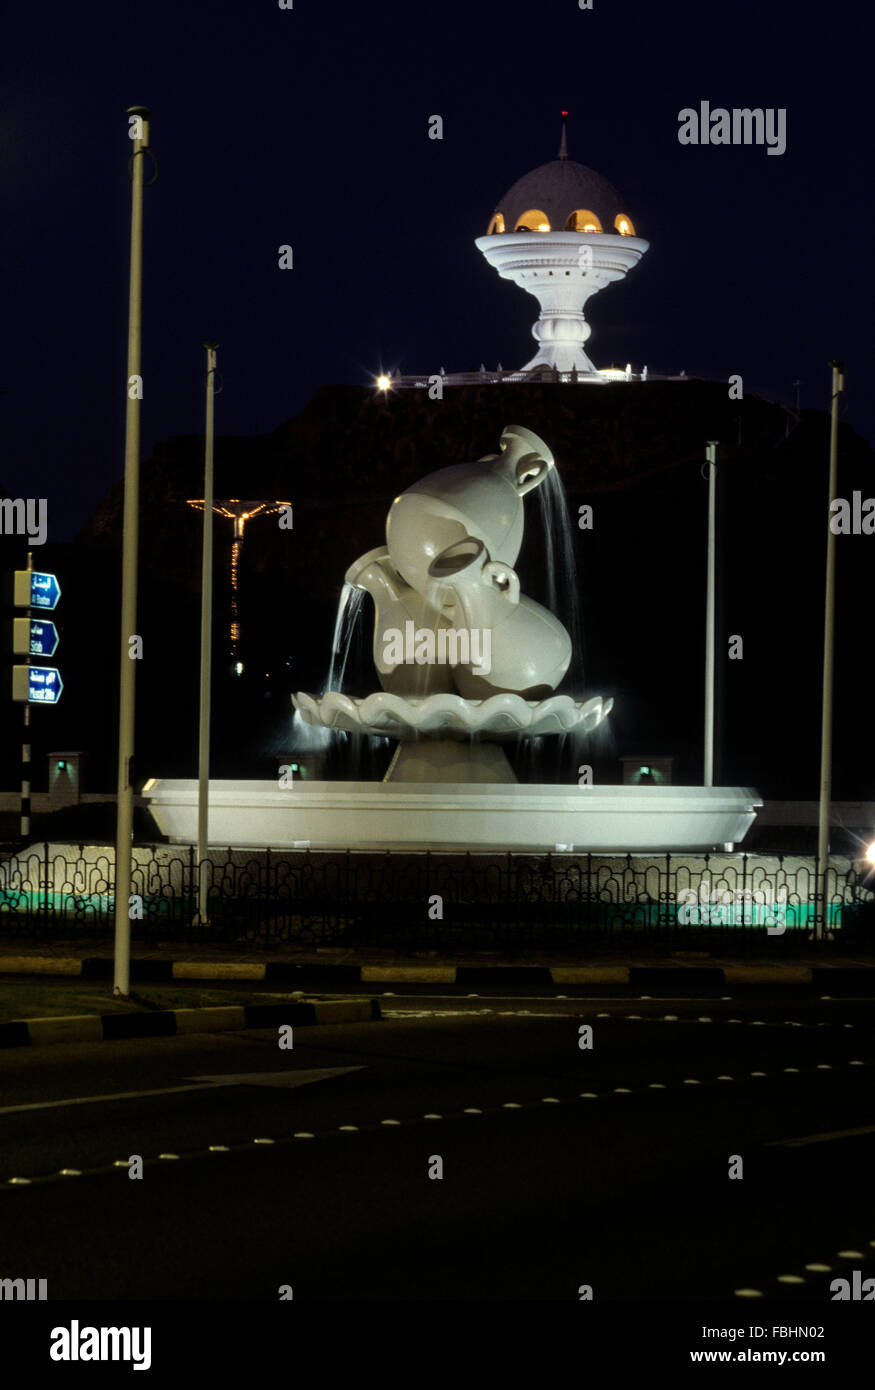 Muscat, Oman.  Monumental Incense Burner and Roundabout with Water Pot Replicas at Night. - Stock Image